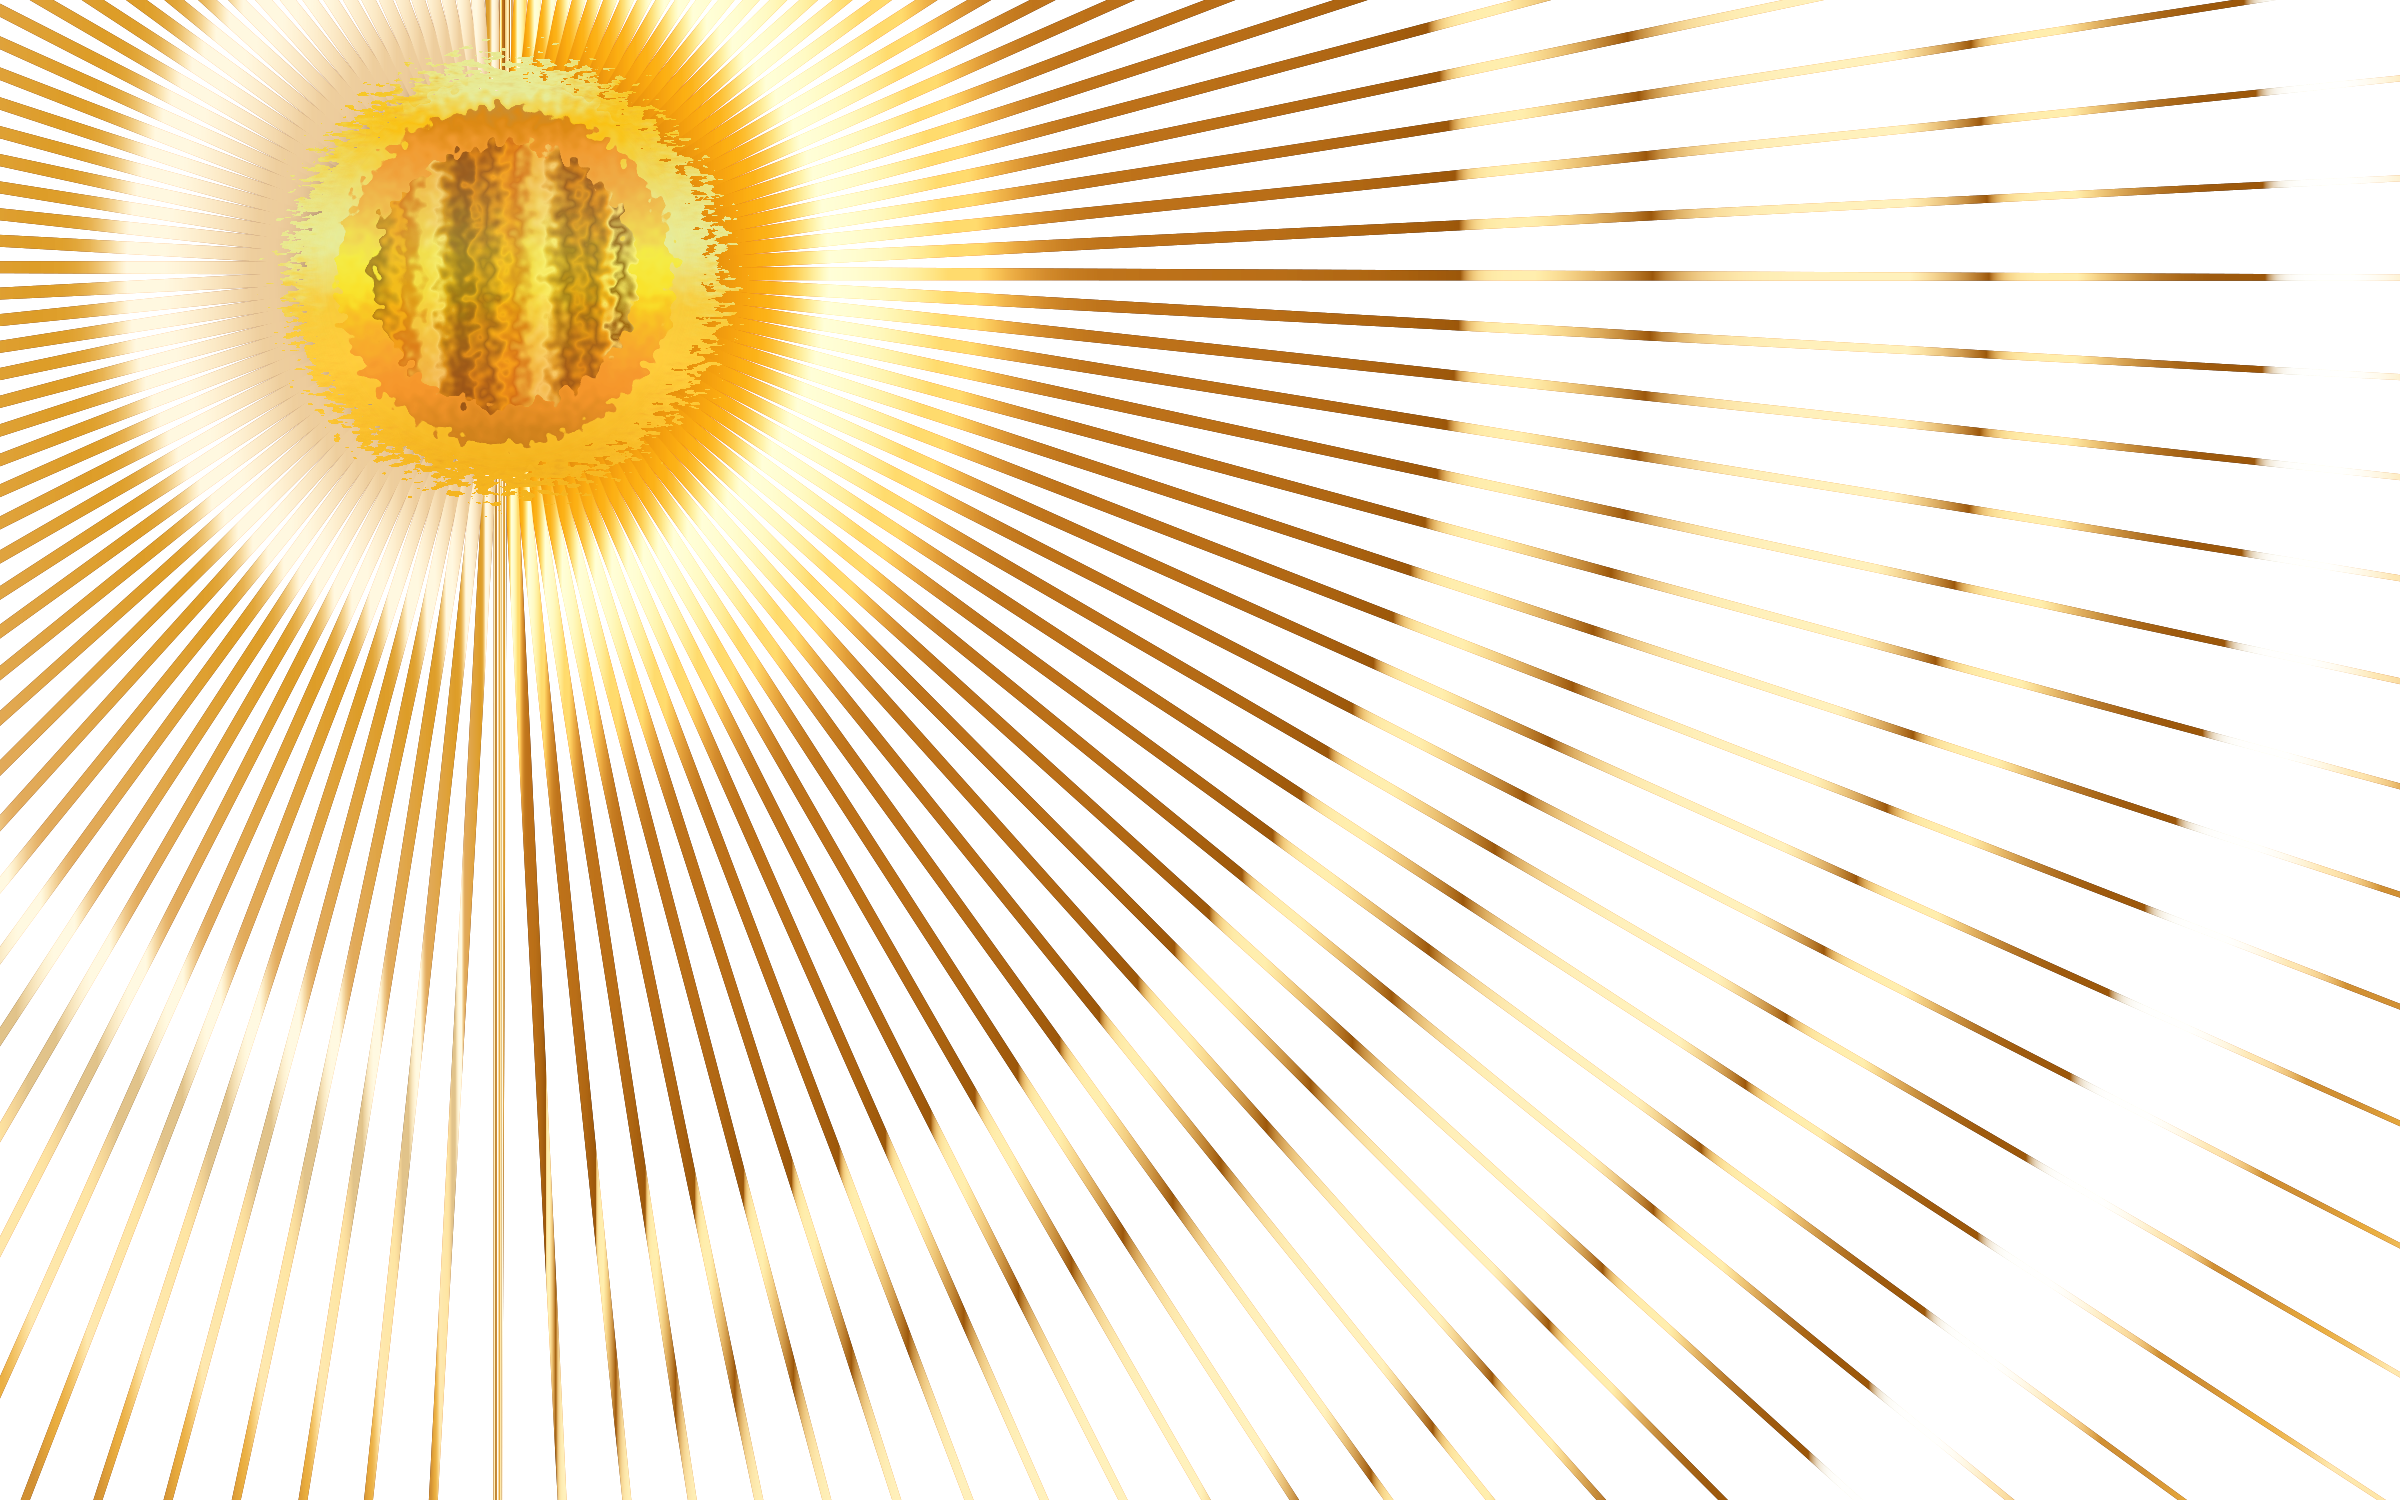 Sun beam png. No background transparent this